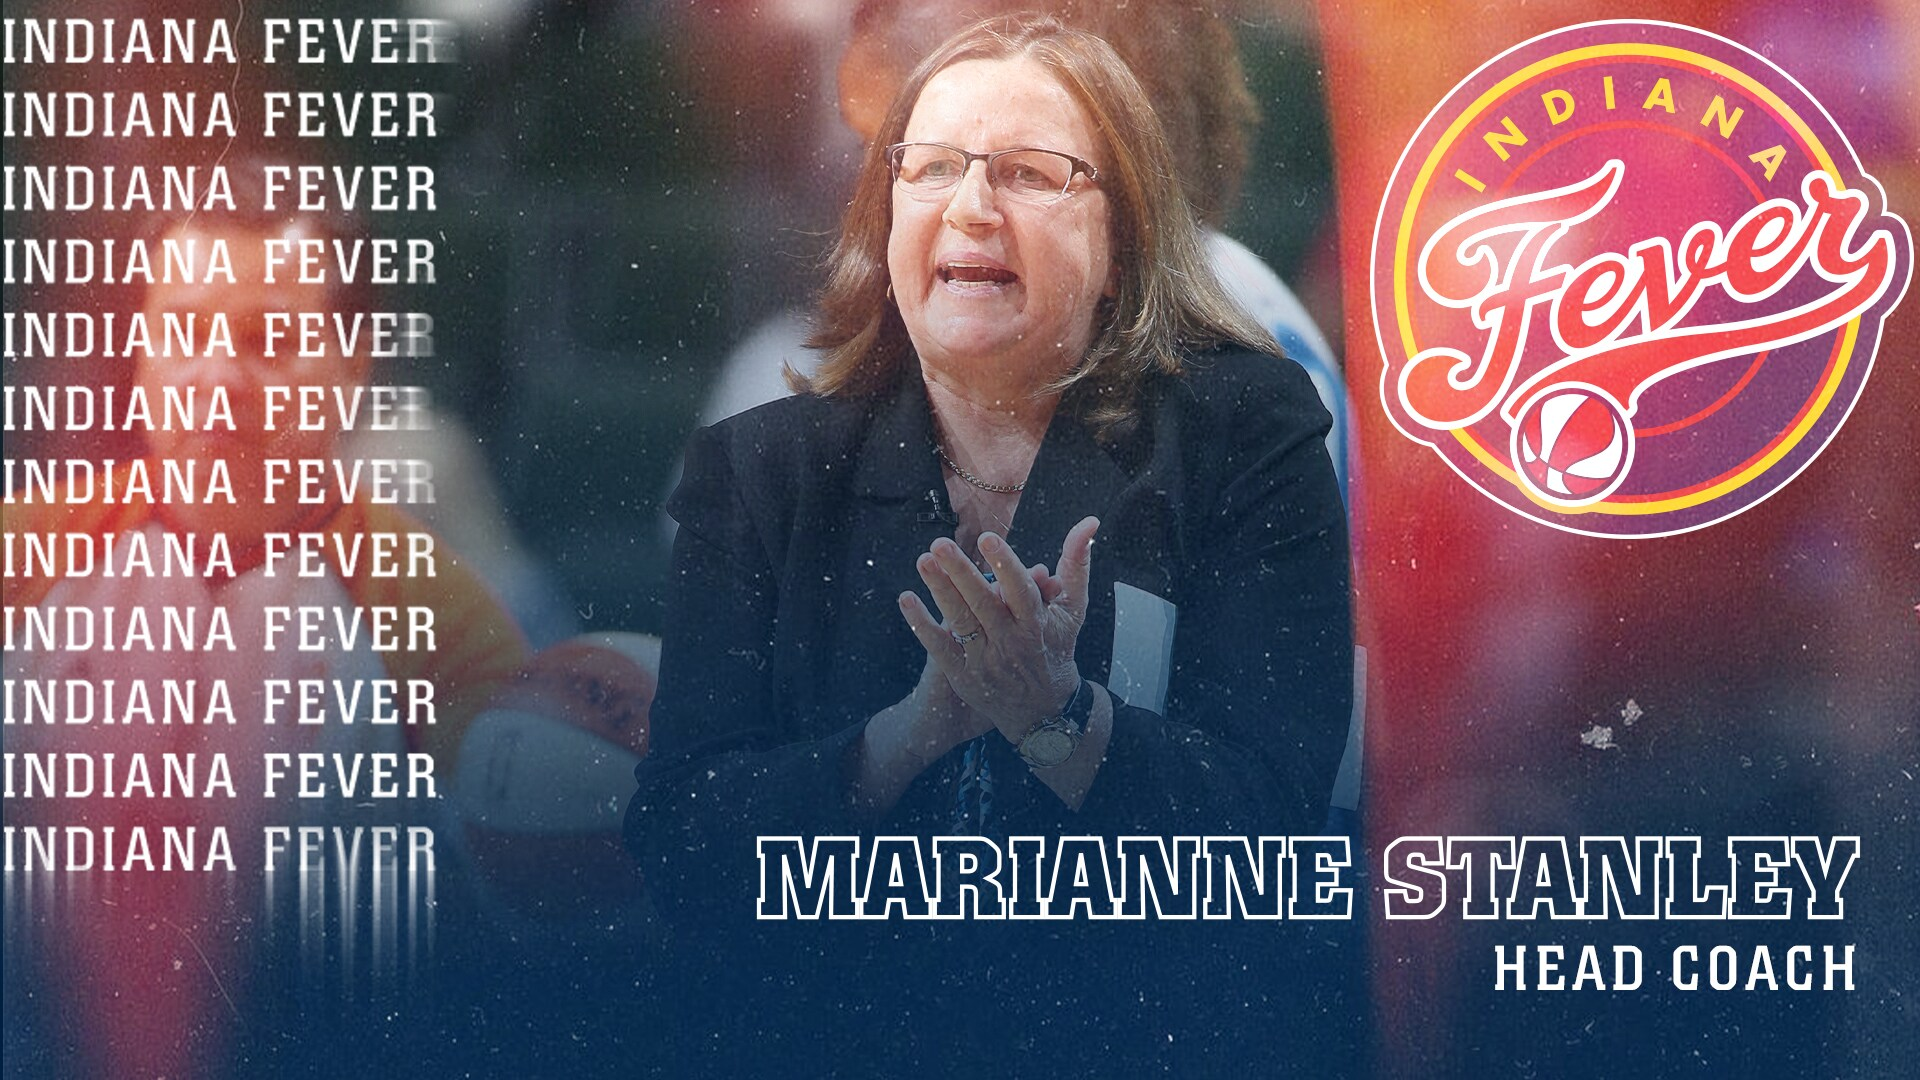 Indiana Fever announce Marianne Stanley as head coach